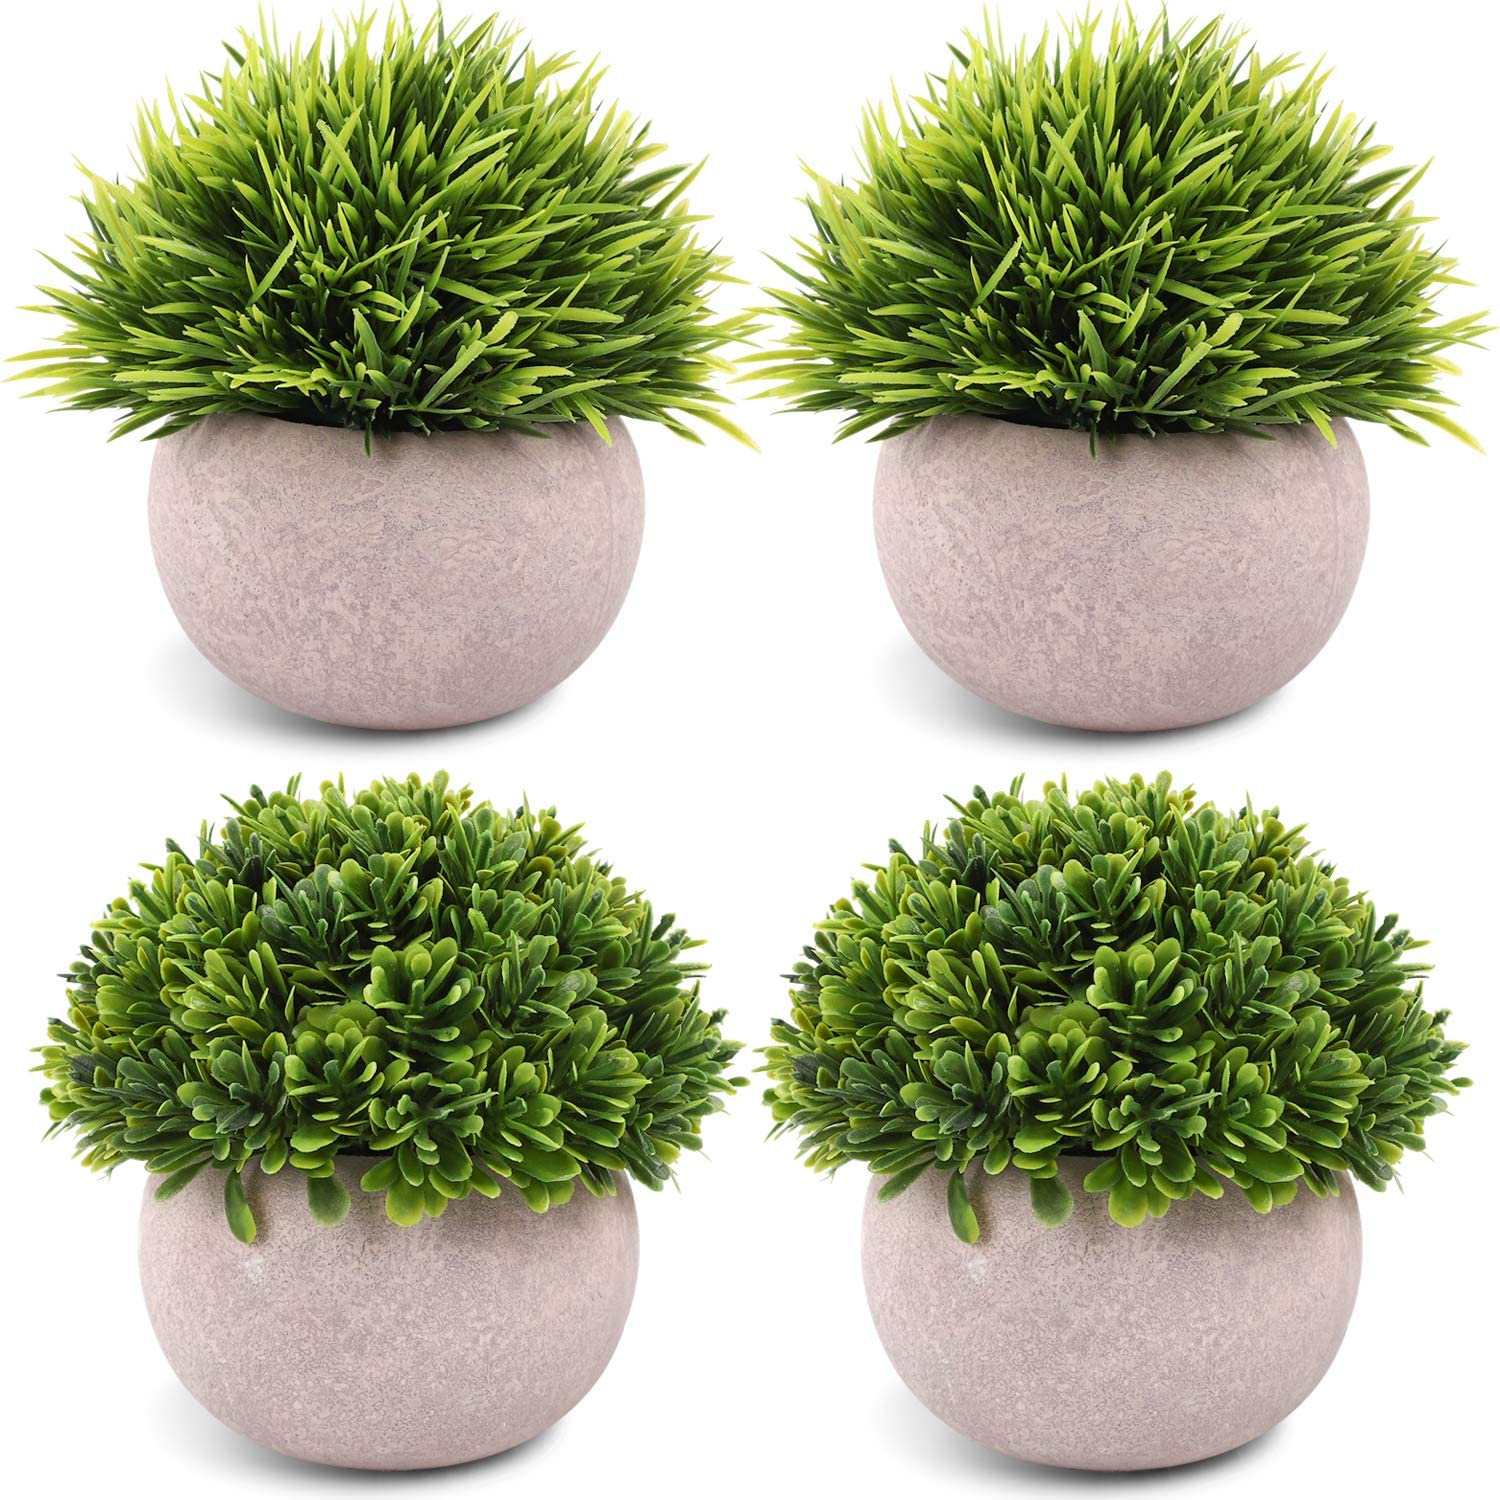 CEWOR 4 Packs Artificial Mini Potted Plants Plastic Faux Topiary Shrubs Fake Plants for Bathroom Home Office Desk Decorations -